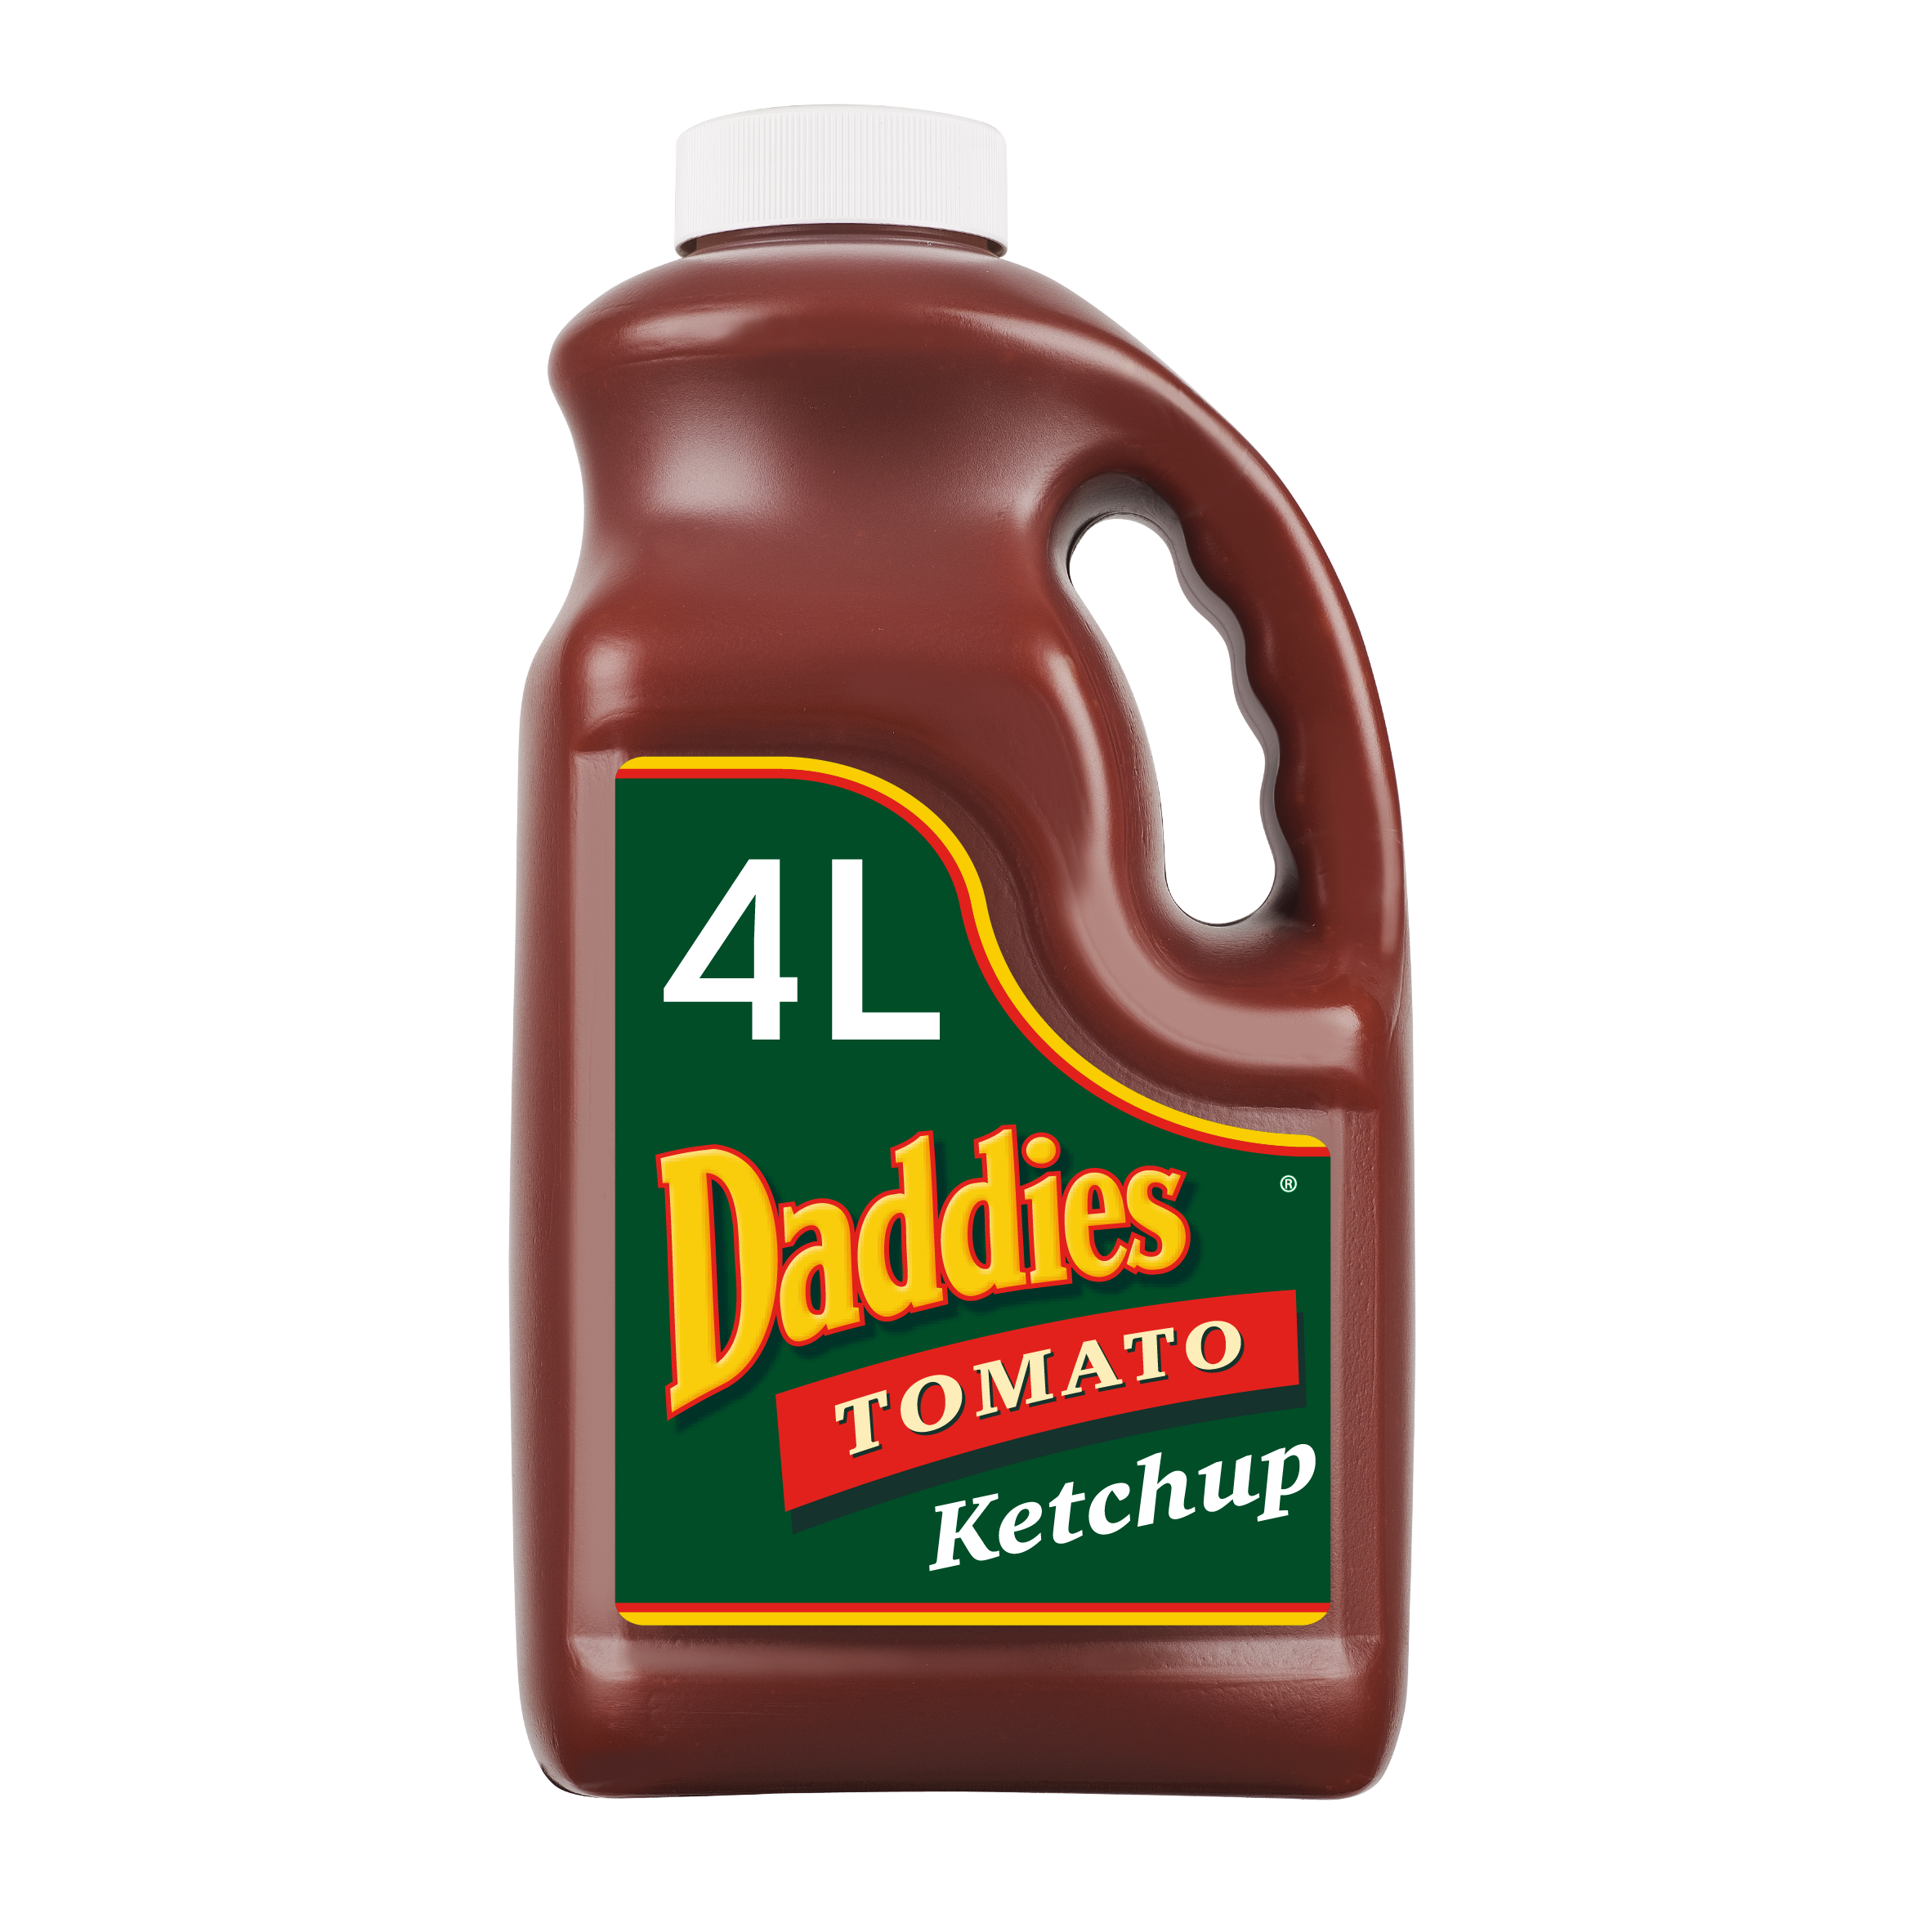 Daddies Tomato Ketchup 4L Handle Jars image